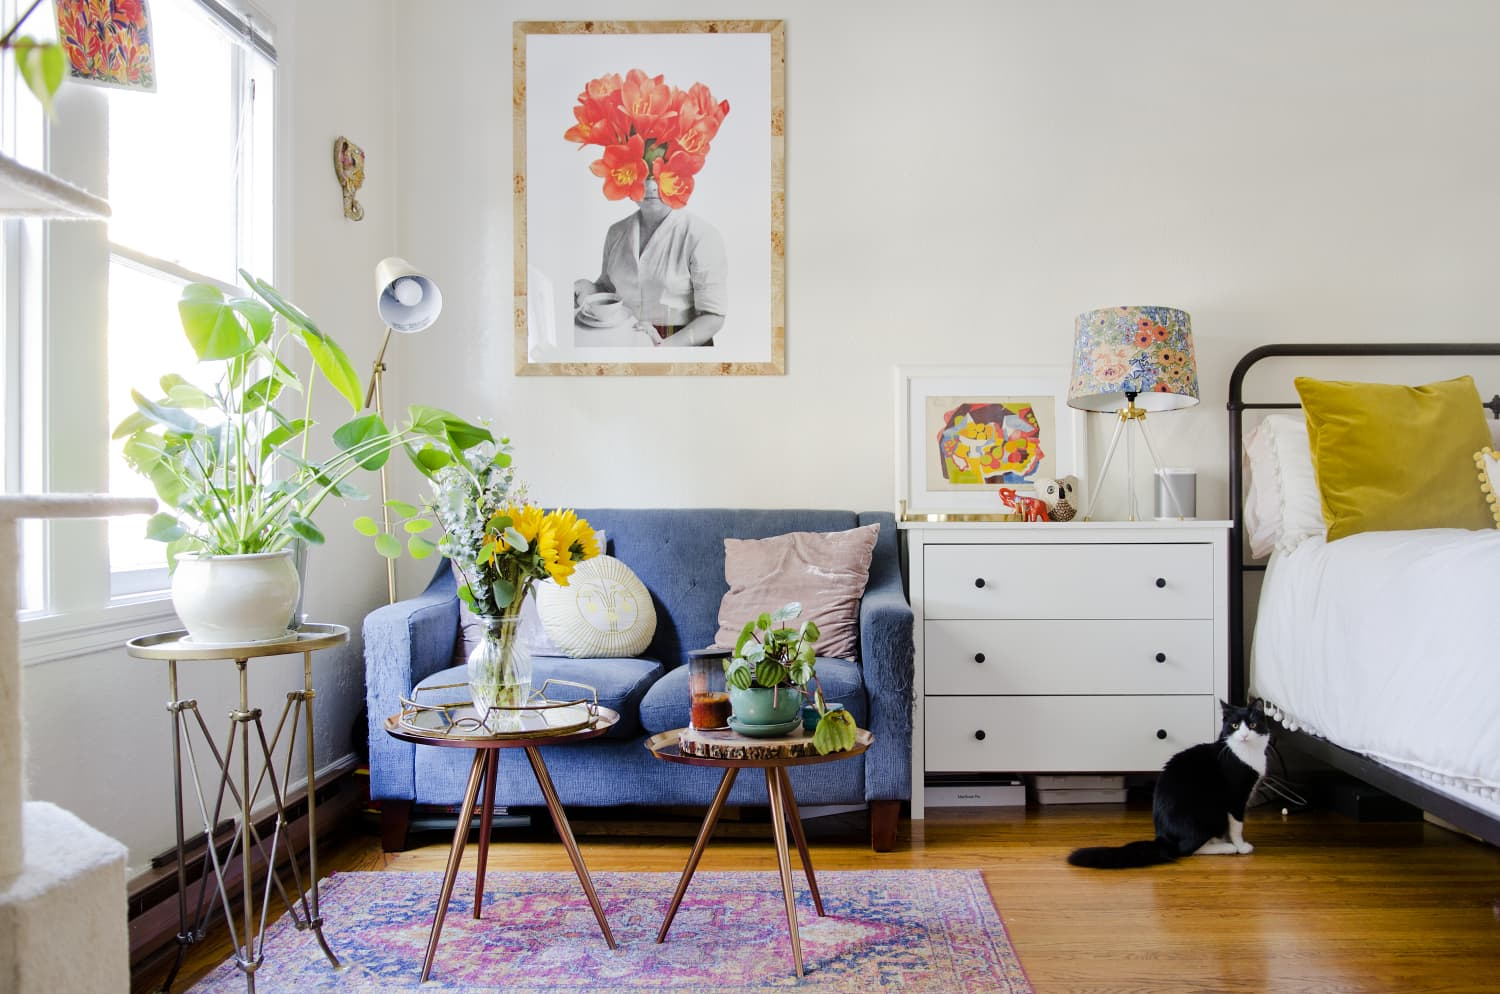 101 Places to Buy Furniture & Home Decor